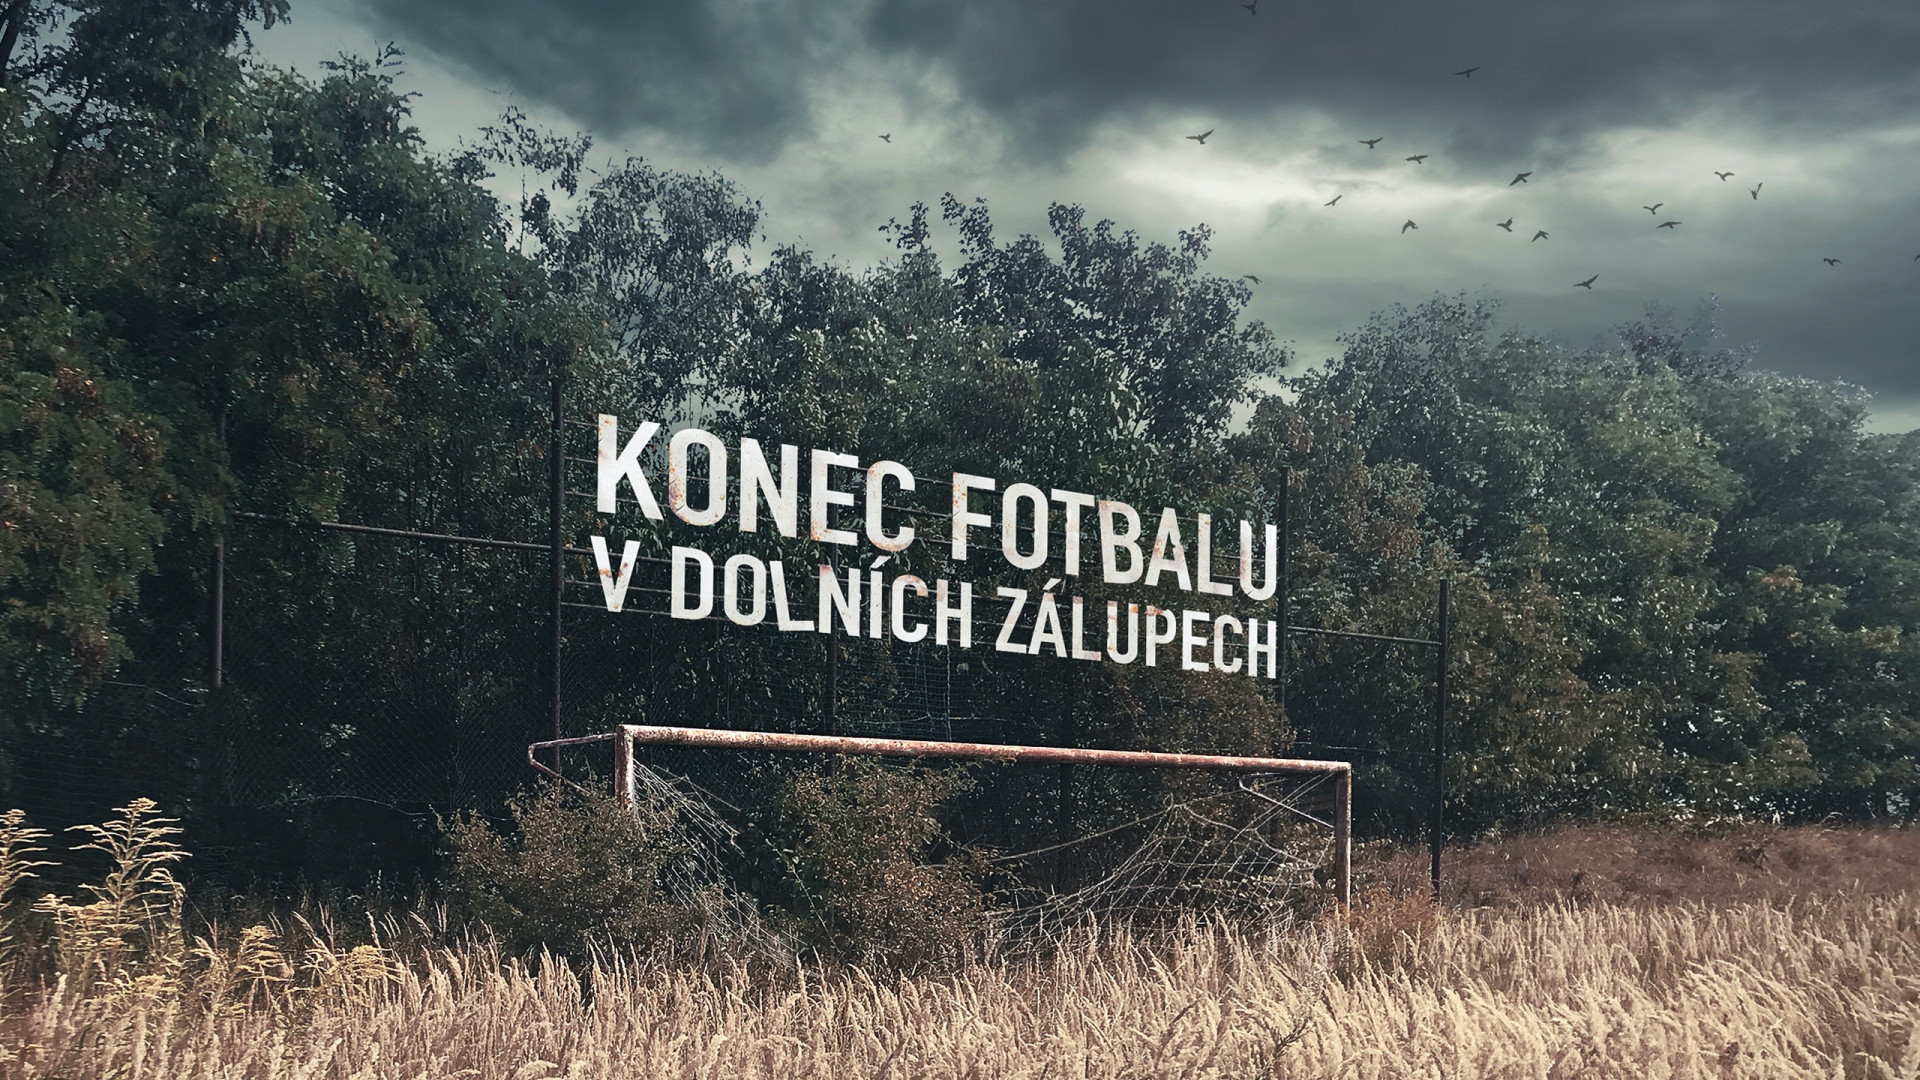 Czech amateur football was slowly dying and Gambrinus refused just to watch it go.